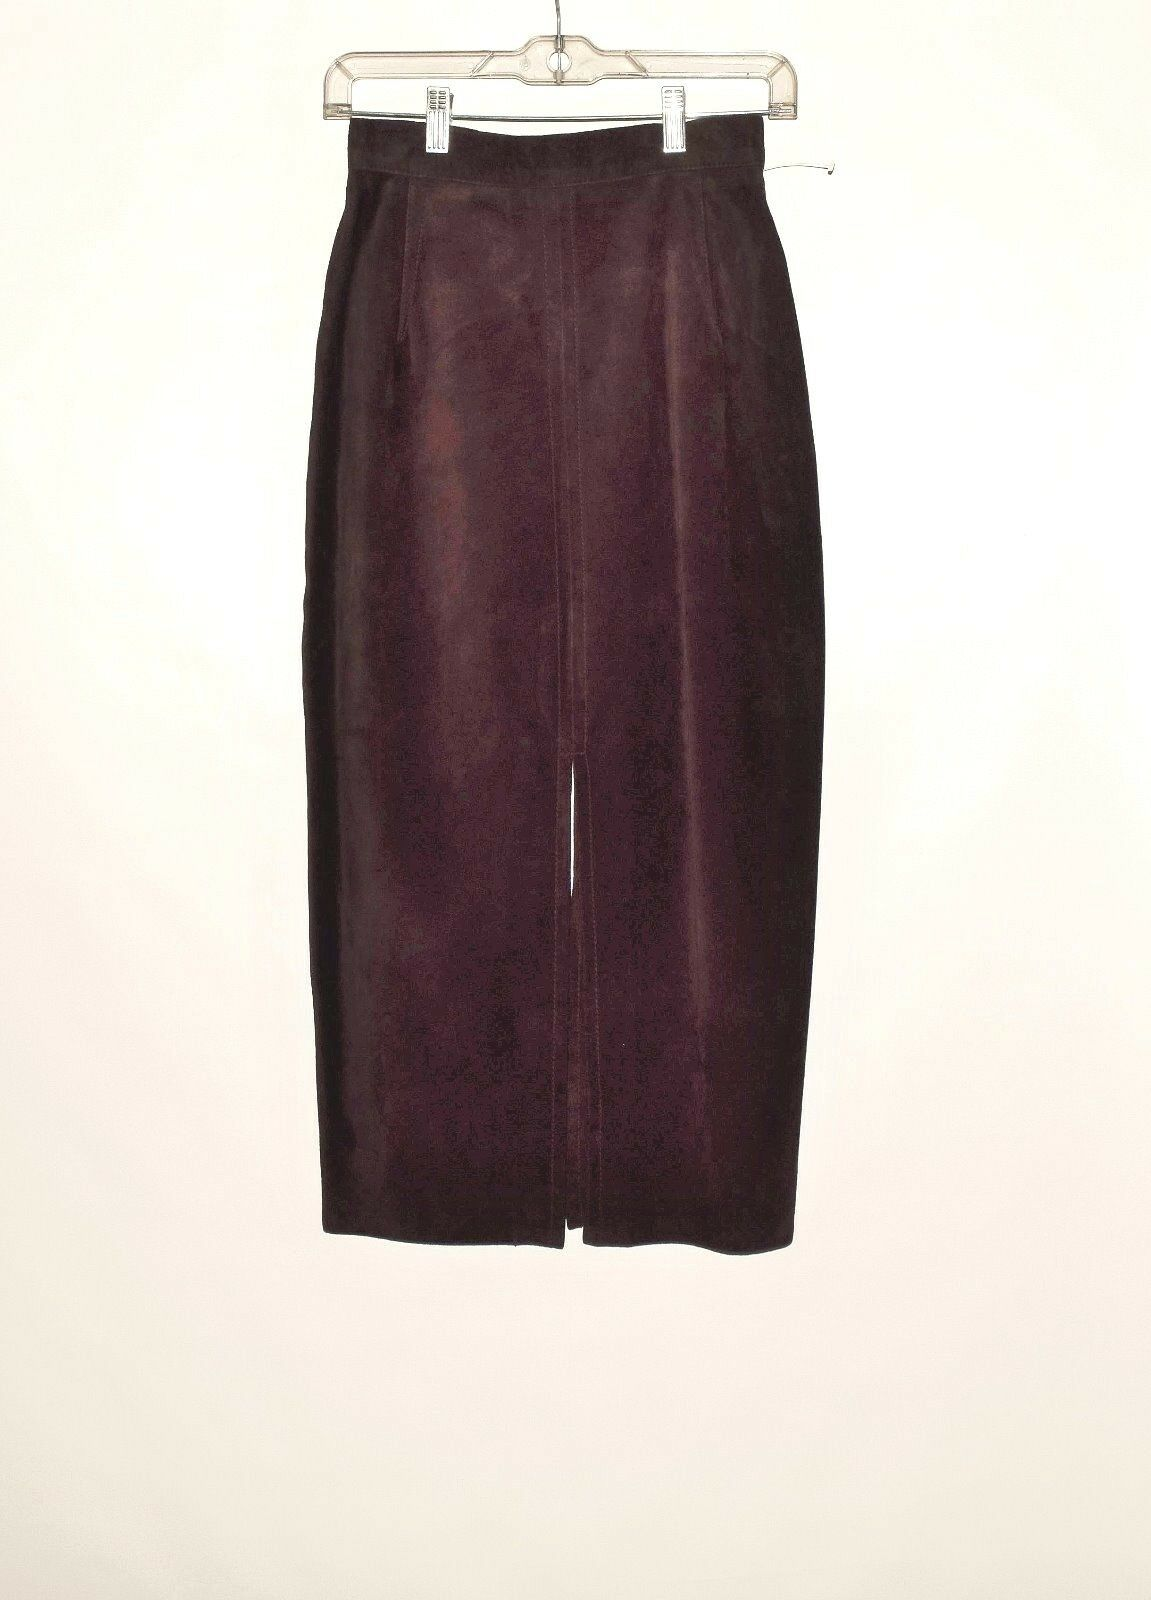 New XOE New York Genuine Leather Suede Chocolate color Women's Pencil Skirt Sz 4